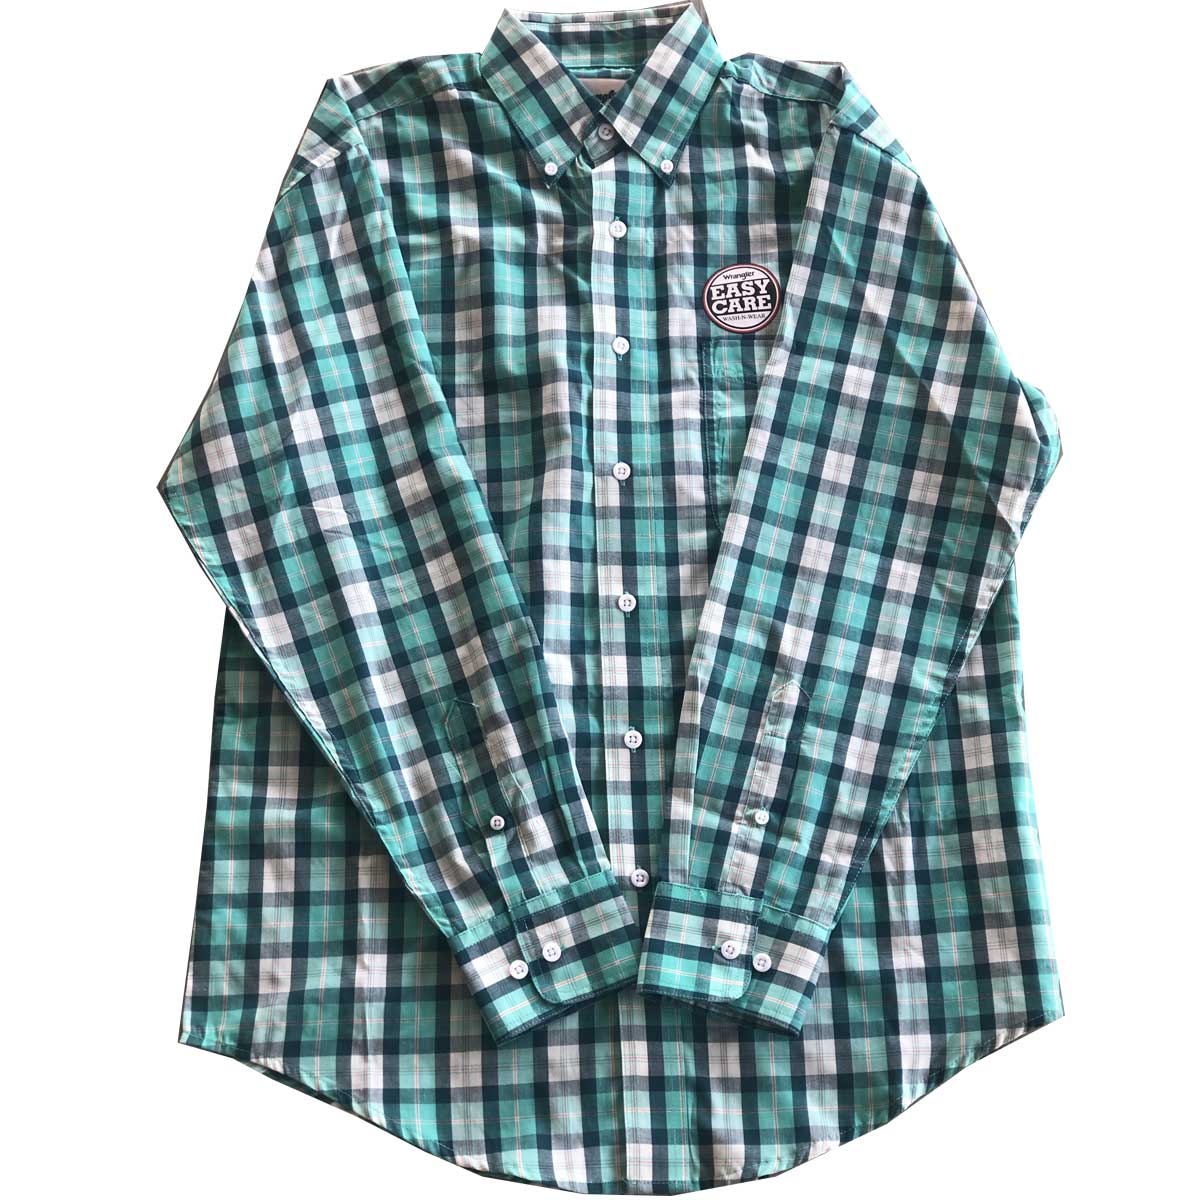 Wrangler Men's George Strait Long Sleeve Button Down One Pocket Plaid Shirt - Green